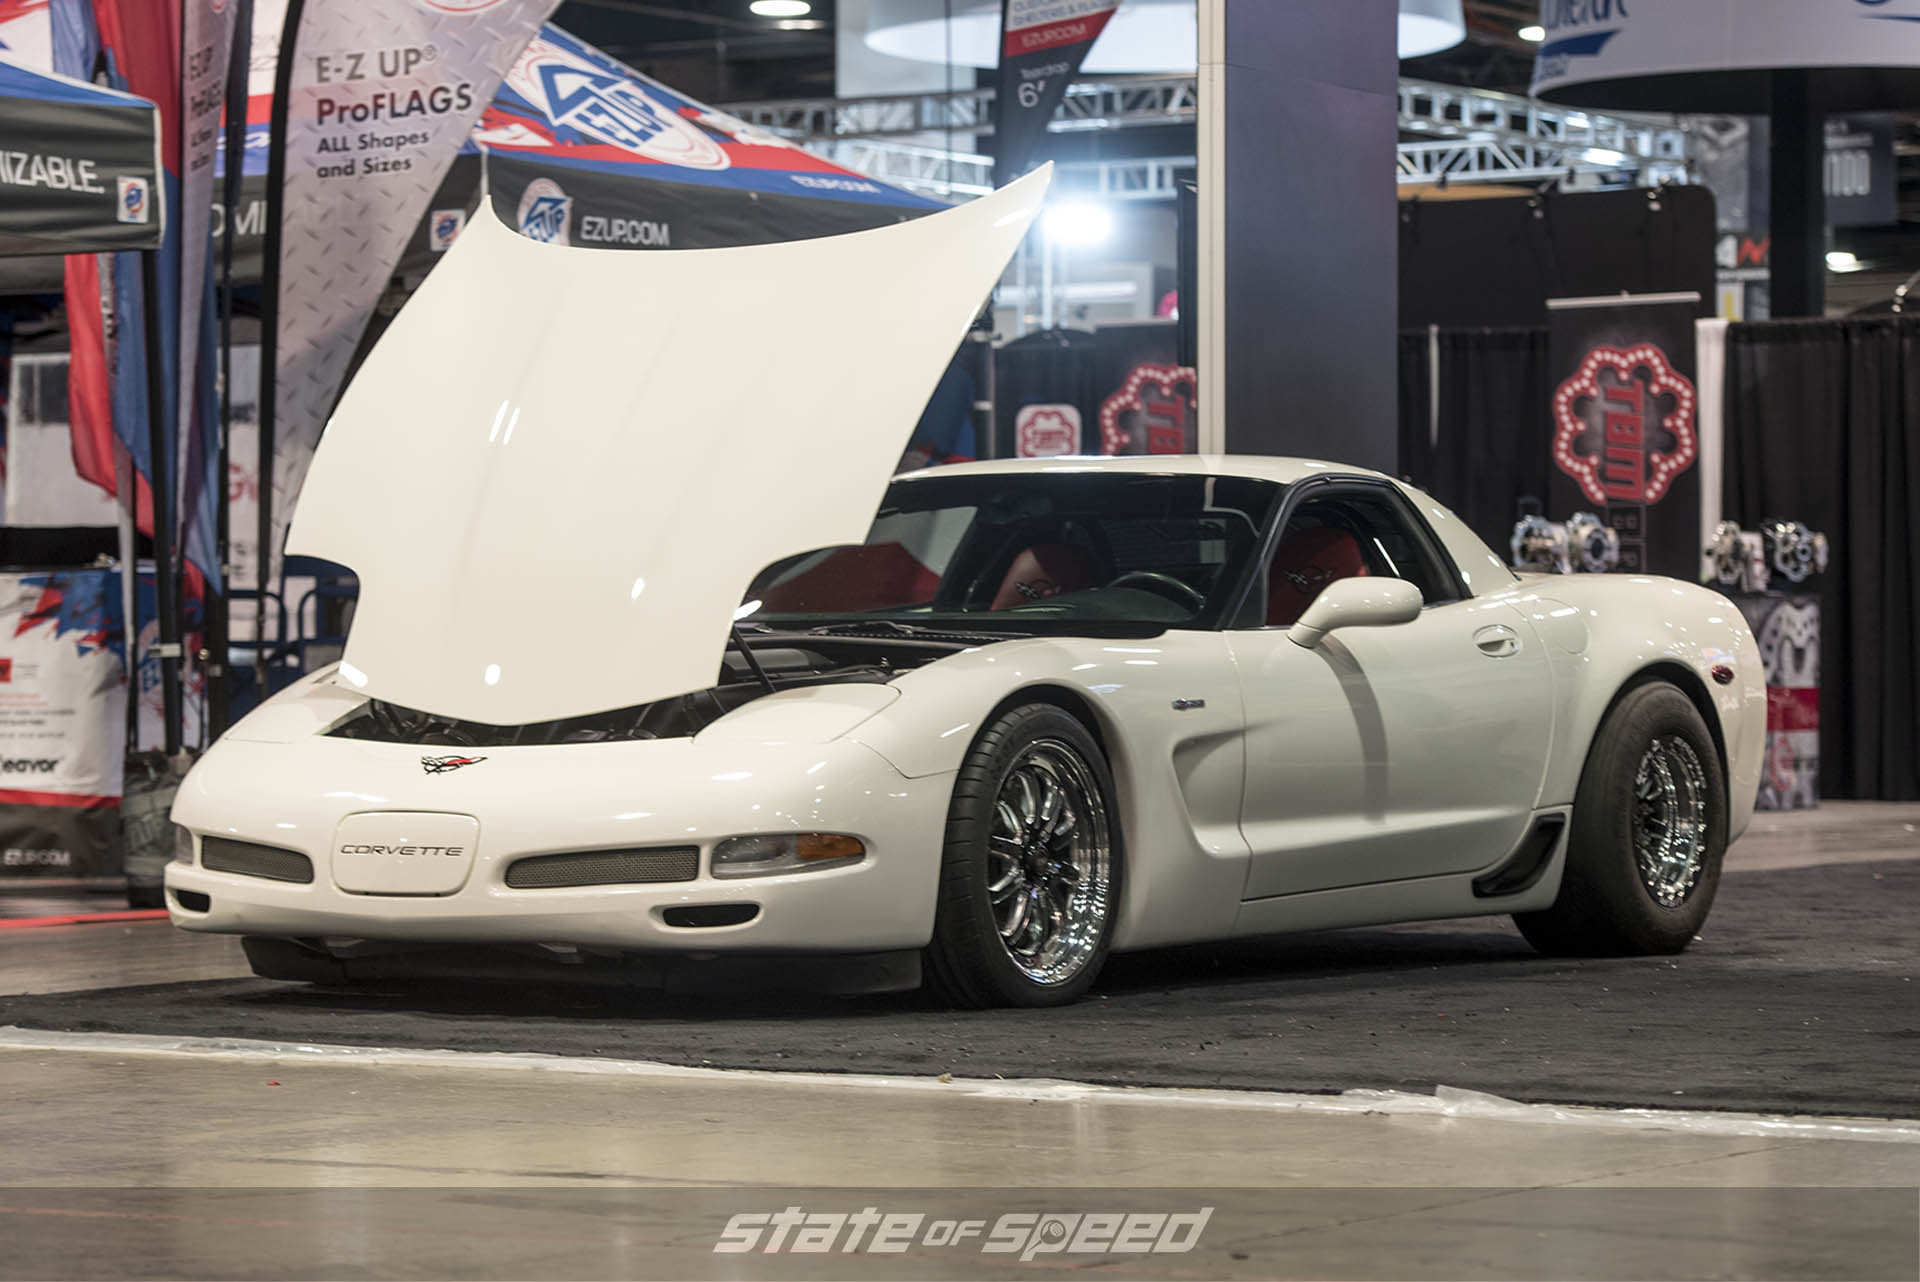 Corvette C6 with a Chevy LS1 engine